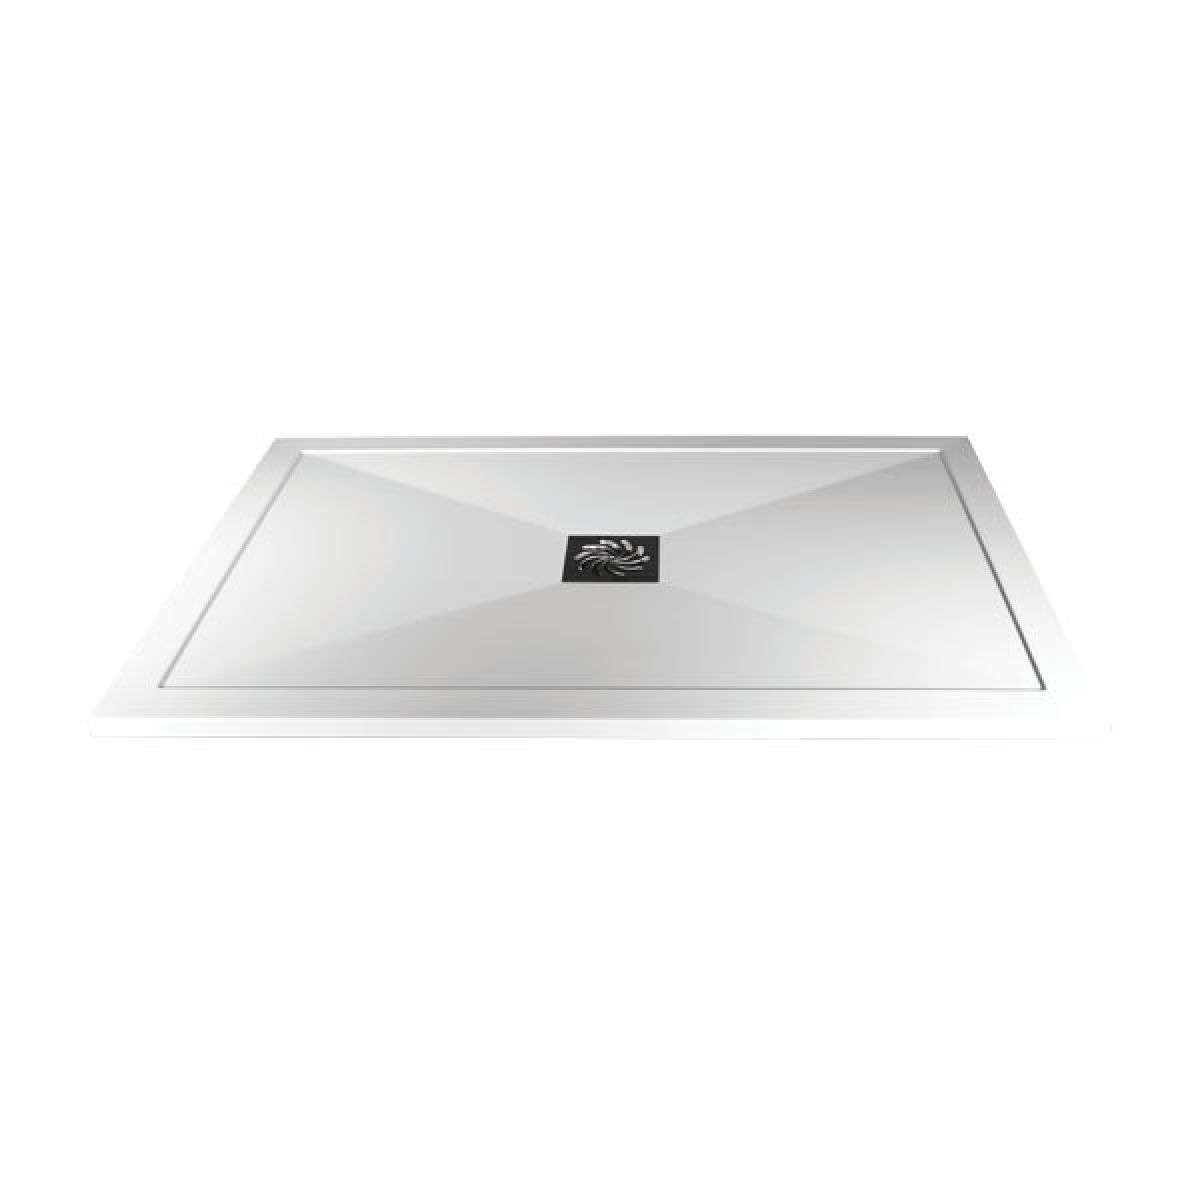 Frontline Slimline Rectangular Shower Tray 1500 x 900mm